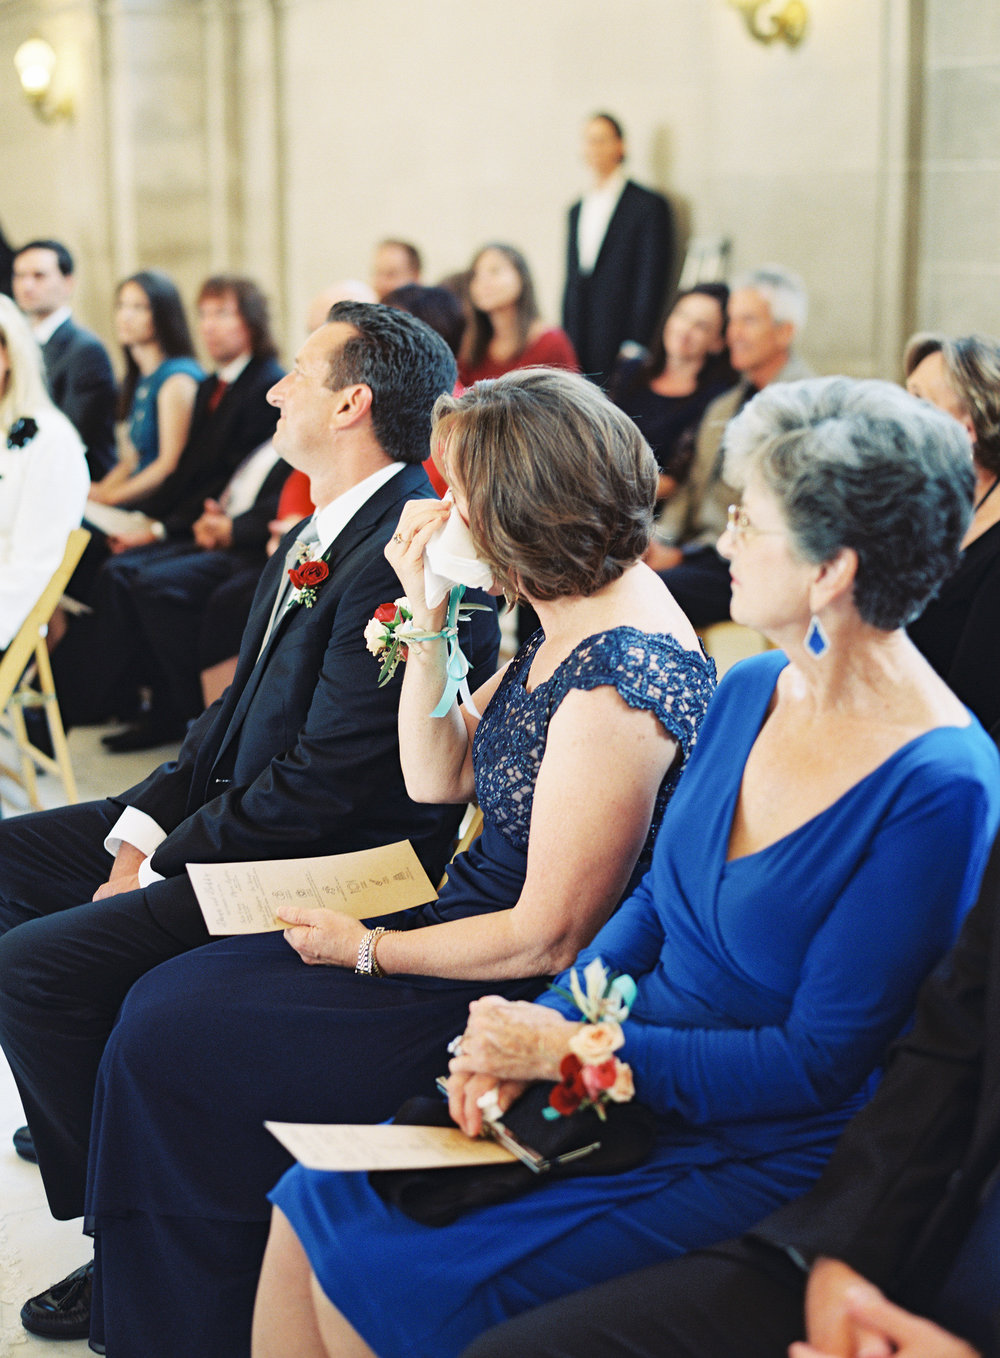 Meghan Mehan Photography - California Wedding Photographer | San Francisco City Hall Wedding 096.jpg